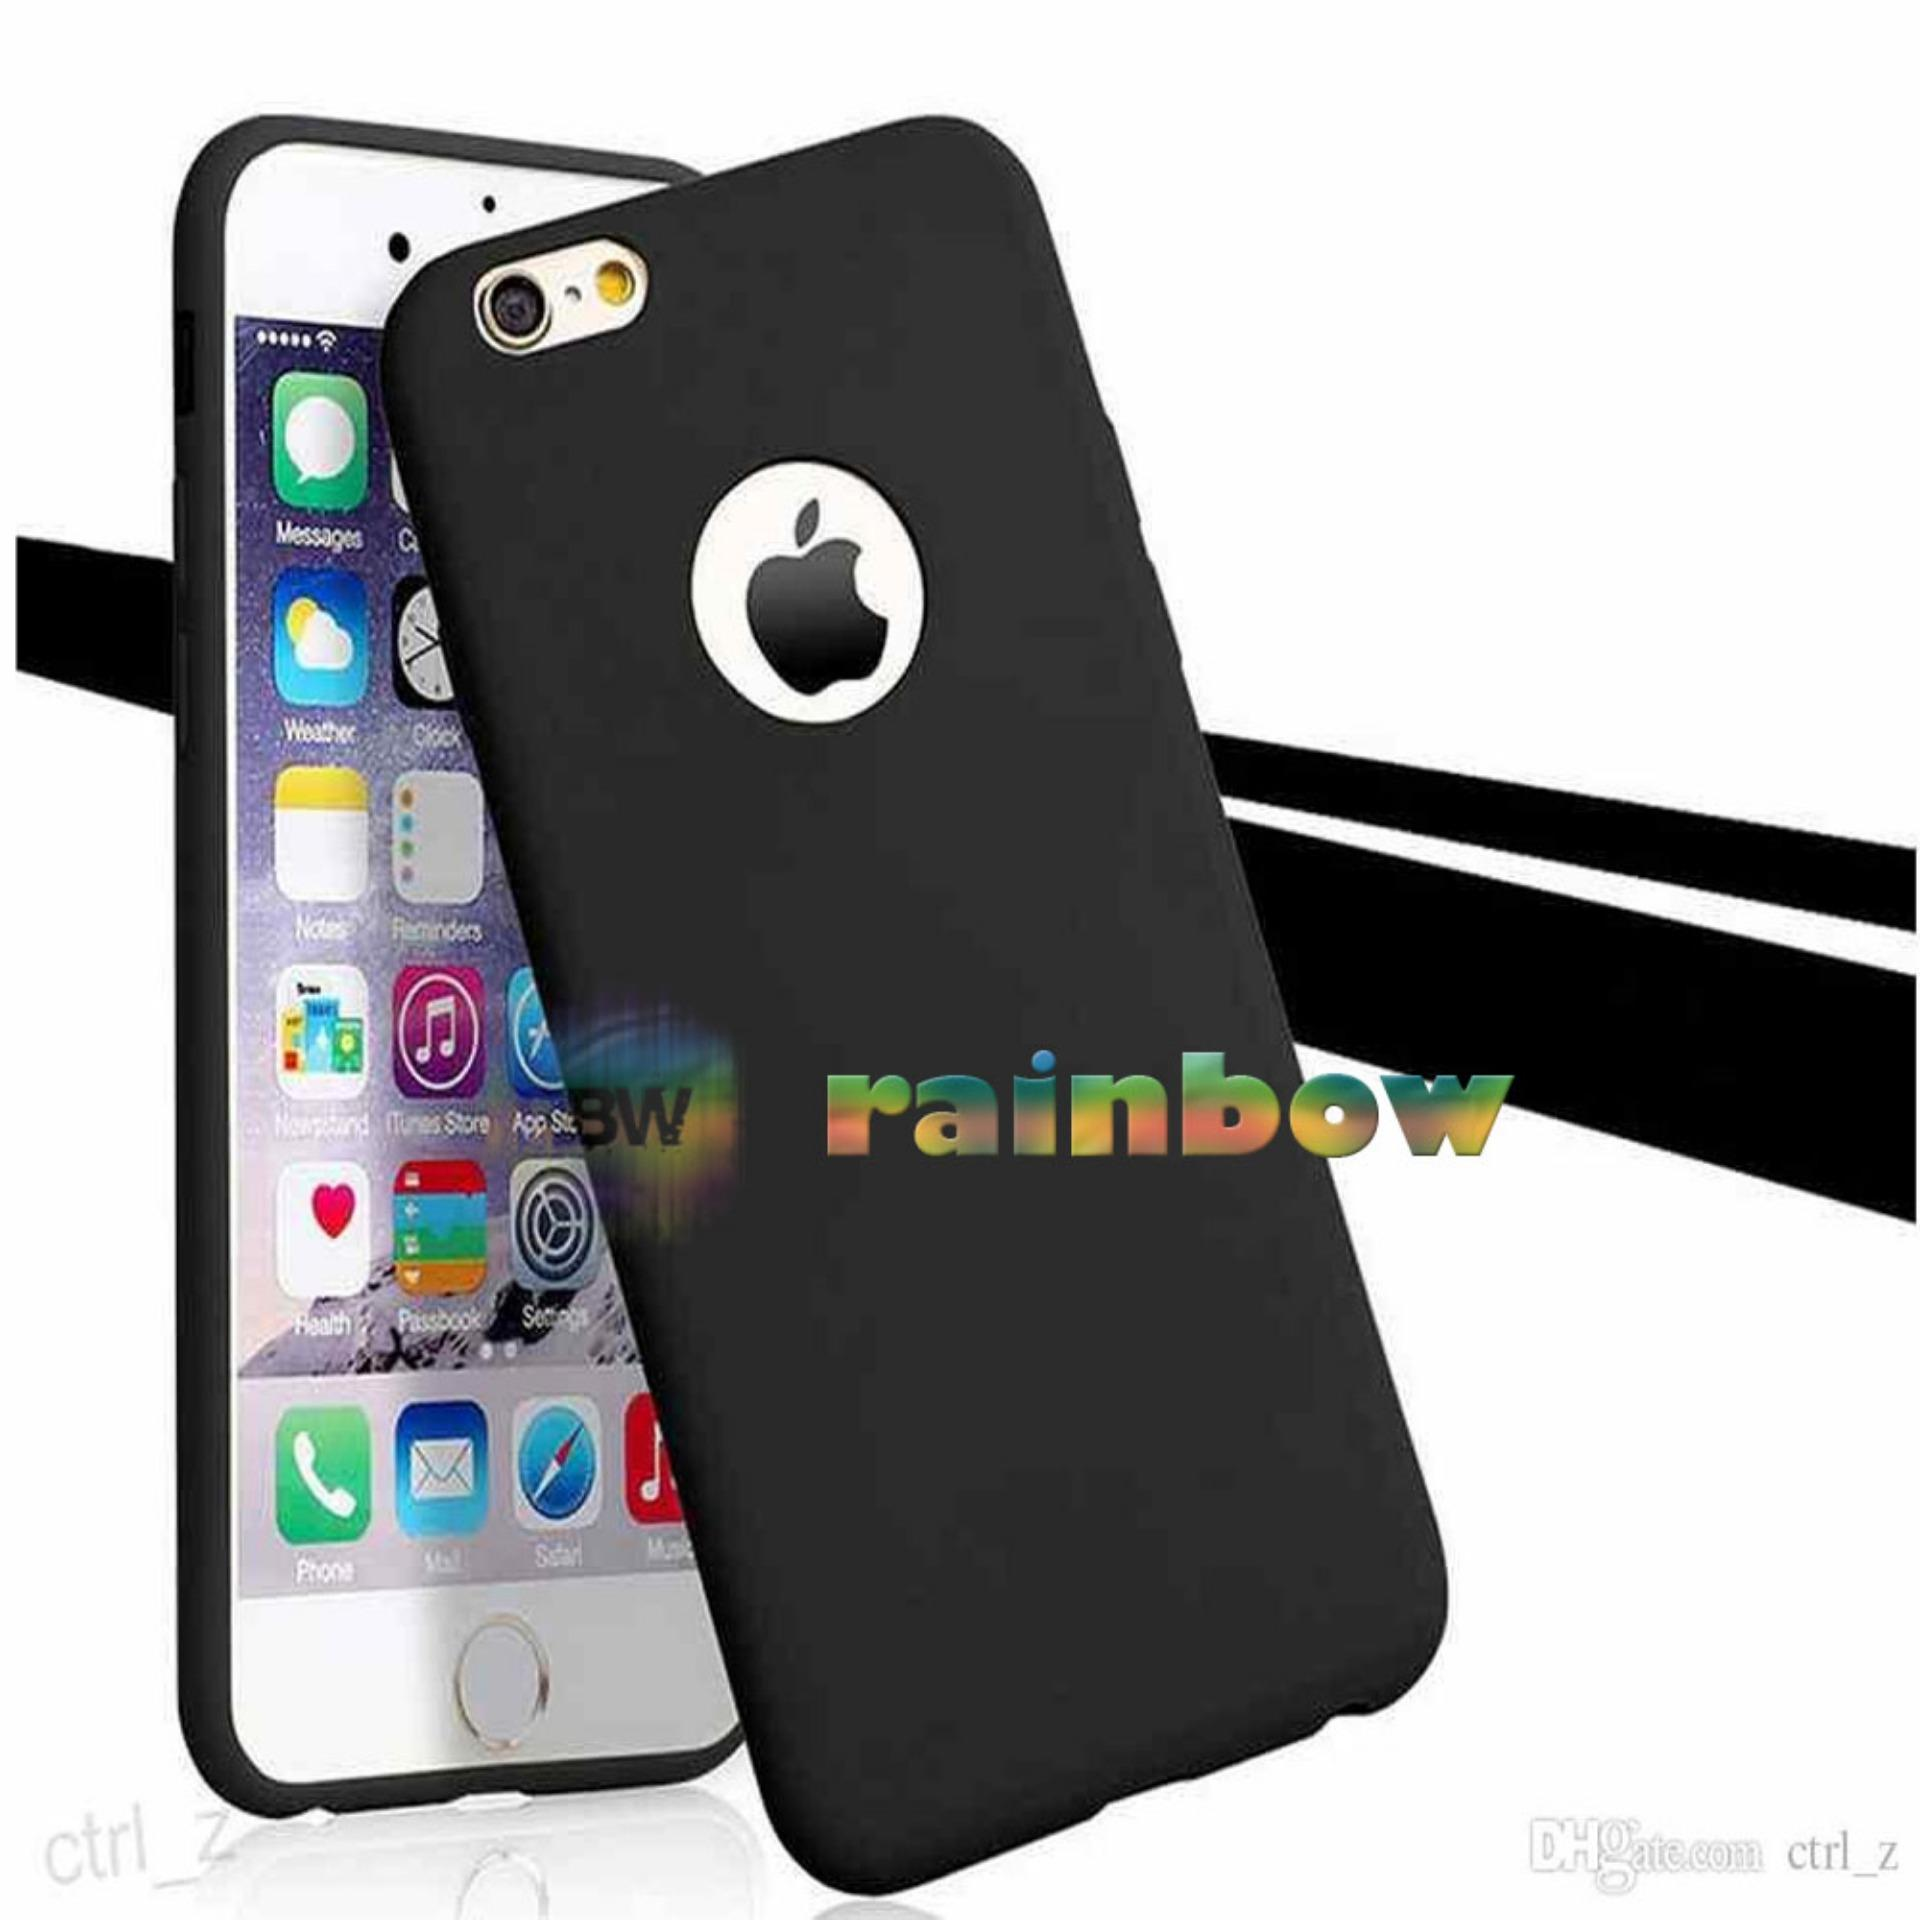 Lize Apple Iphone6 / Iphone 6 / Iphone 6G / Iphone 6S Ori Ukuran 4.7 inch / Softshell / Jelly Case / Soft Case / Soft Back Case / Silicone / Silicon / Silikon / Case Iphone / Case HP / Casing Handphone Iphone 6 - Hitam